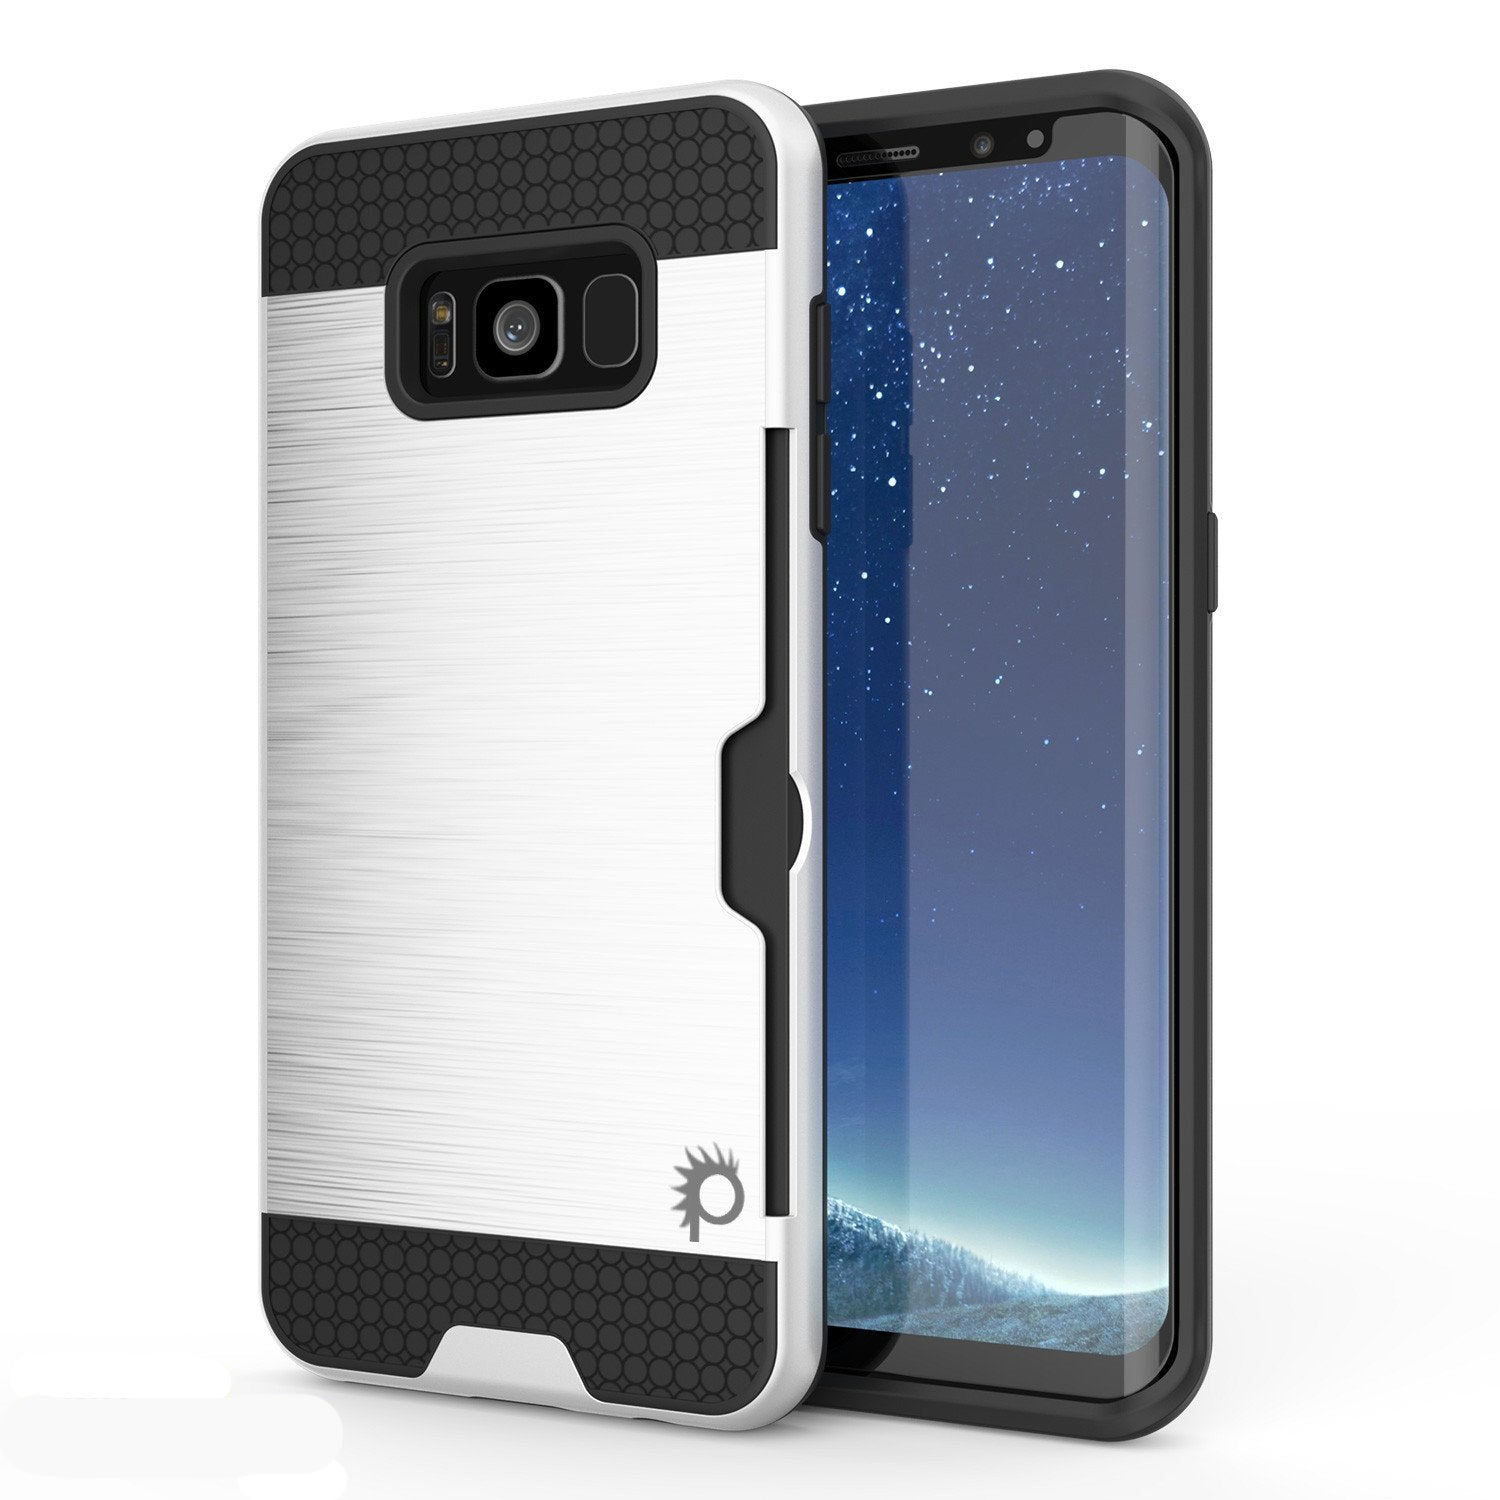 Galaxy S8 Case, PUNKcase [SLOT Series] [Slim Fit] Dual-Layer Armor Cover w/Integrated Anti-Shock System, Credit Card Slot [White]